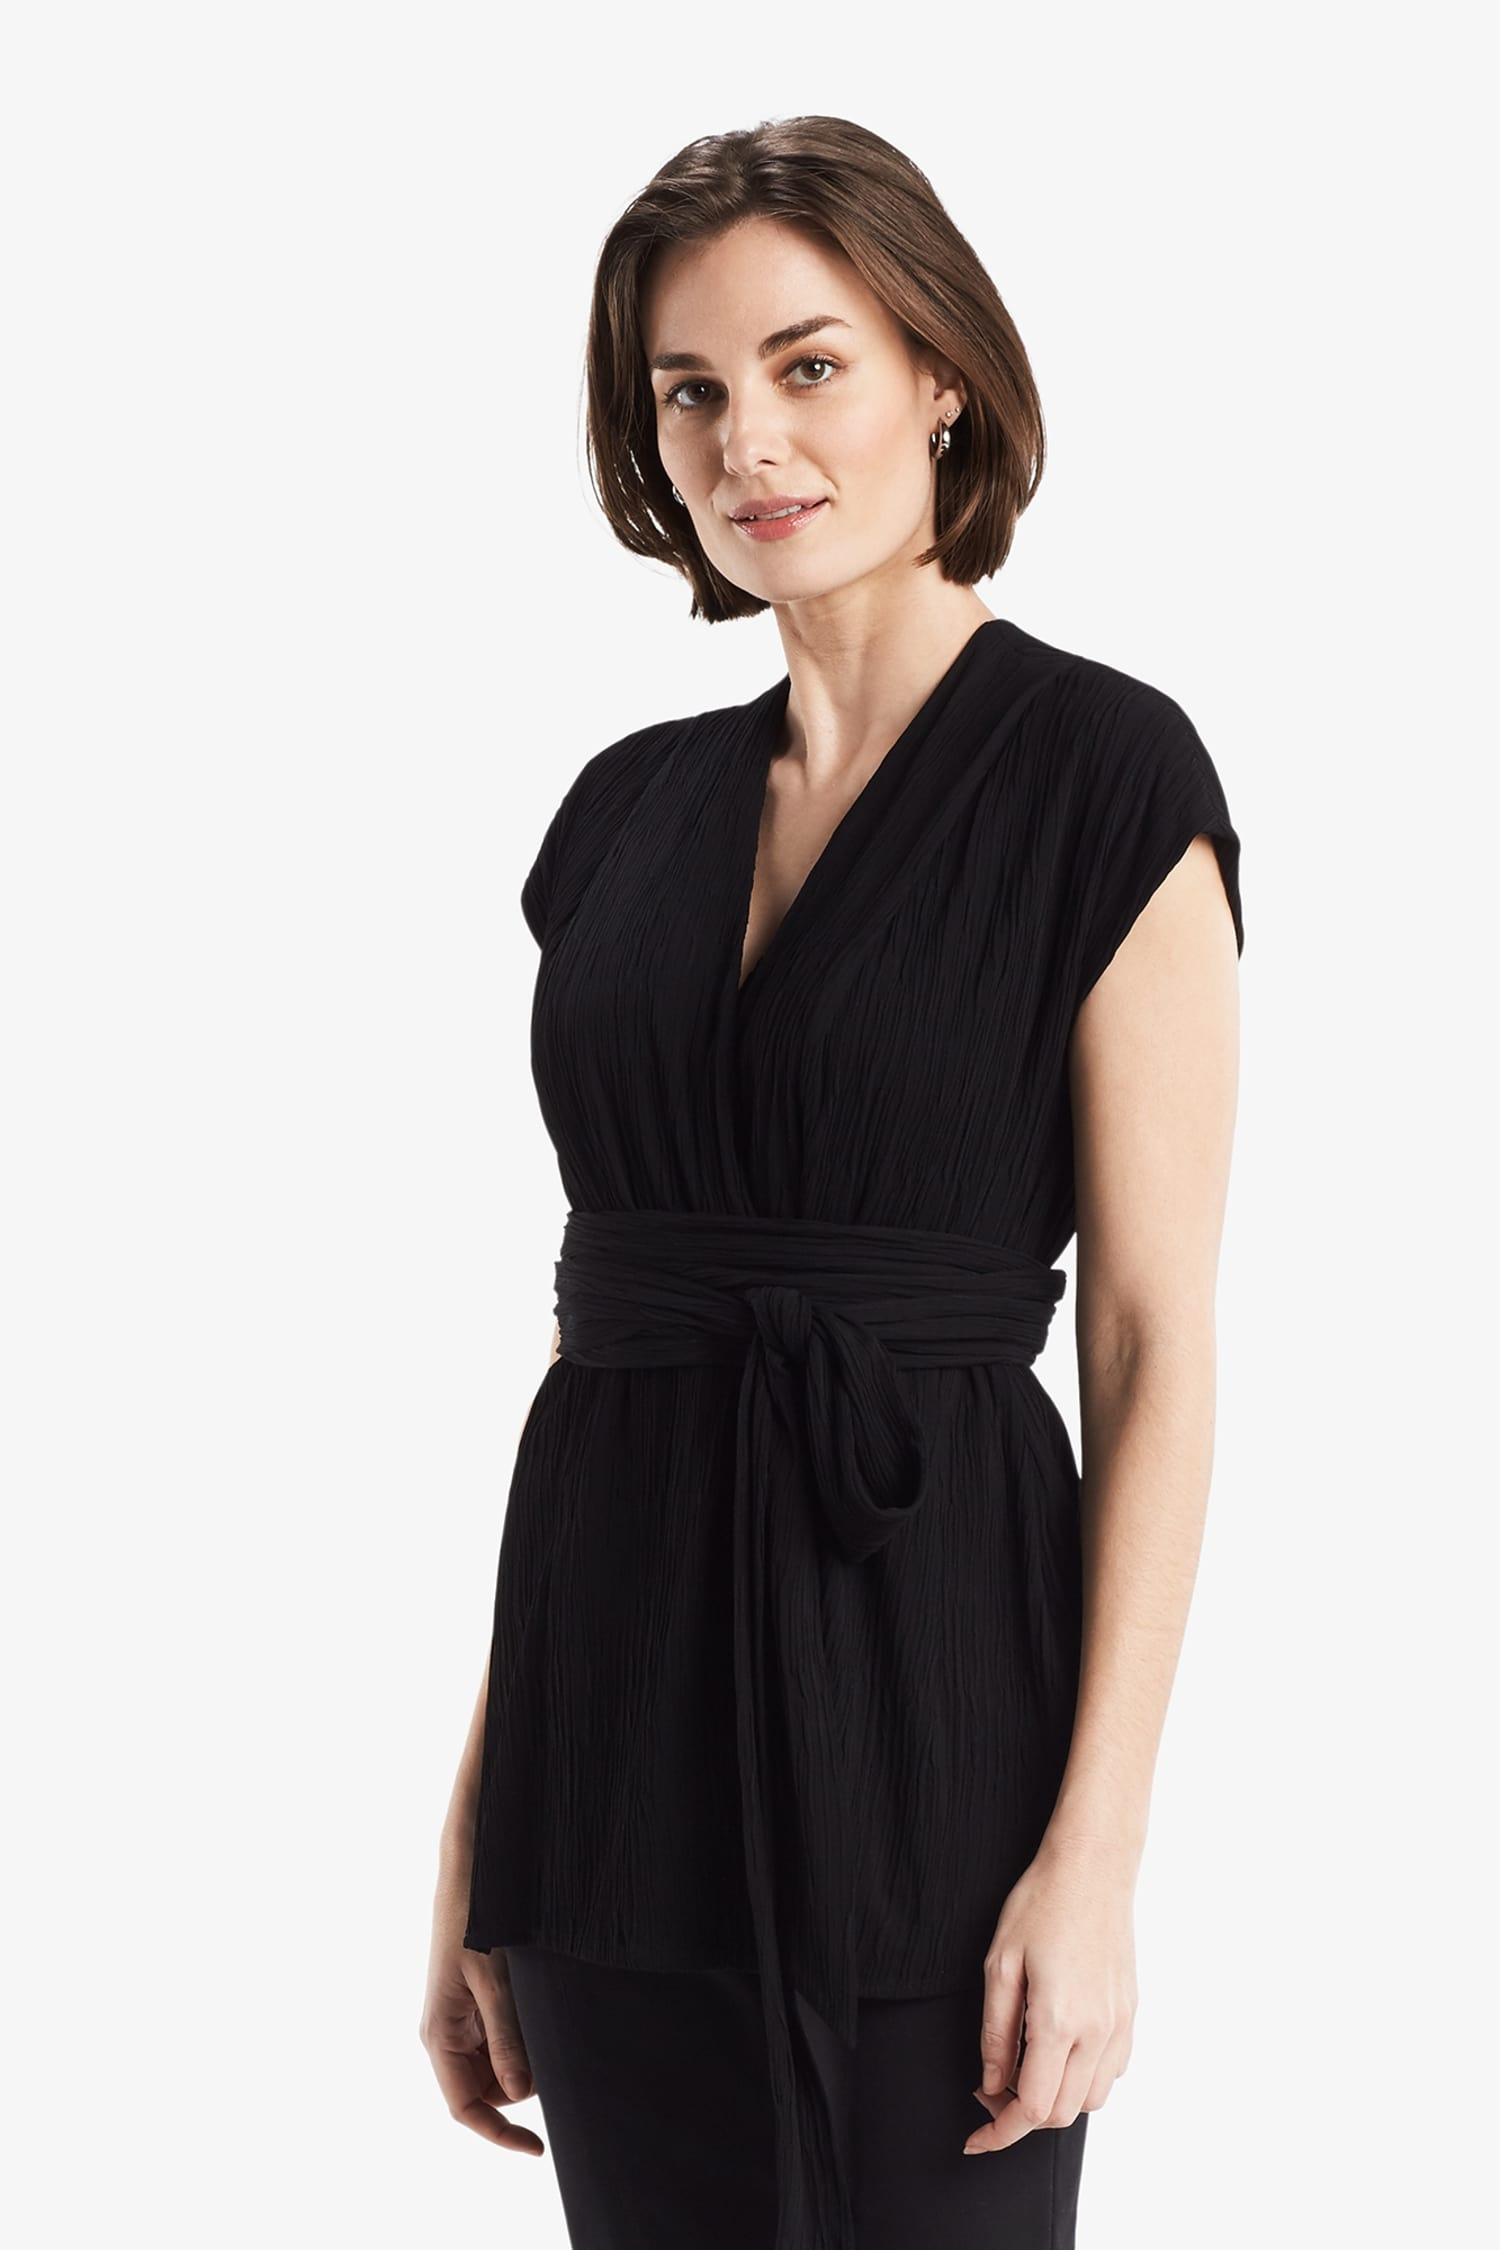 add372d1b0ac Side image of a woman standing wearing the Valerie Top in black